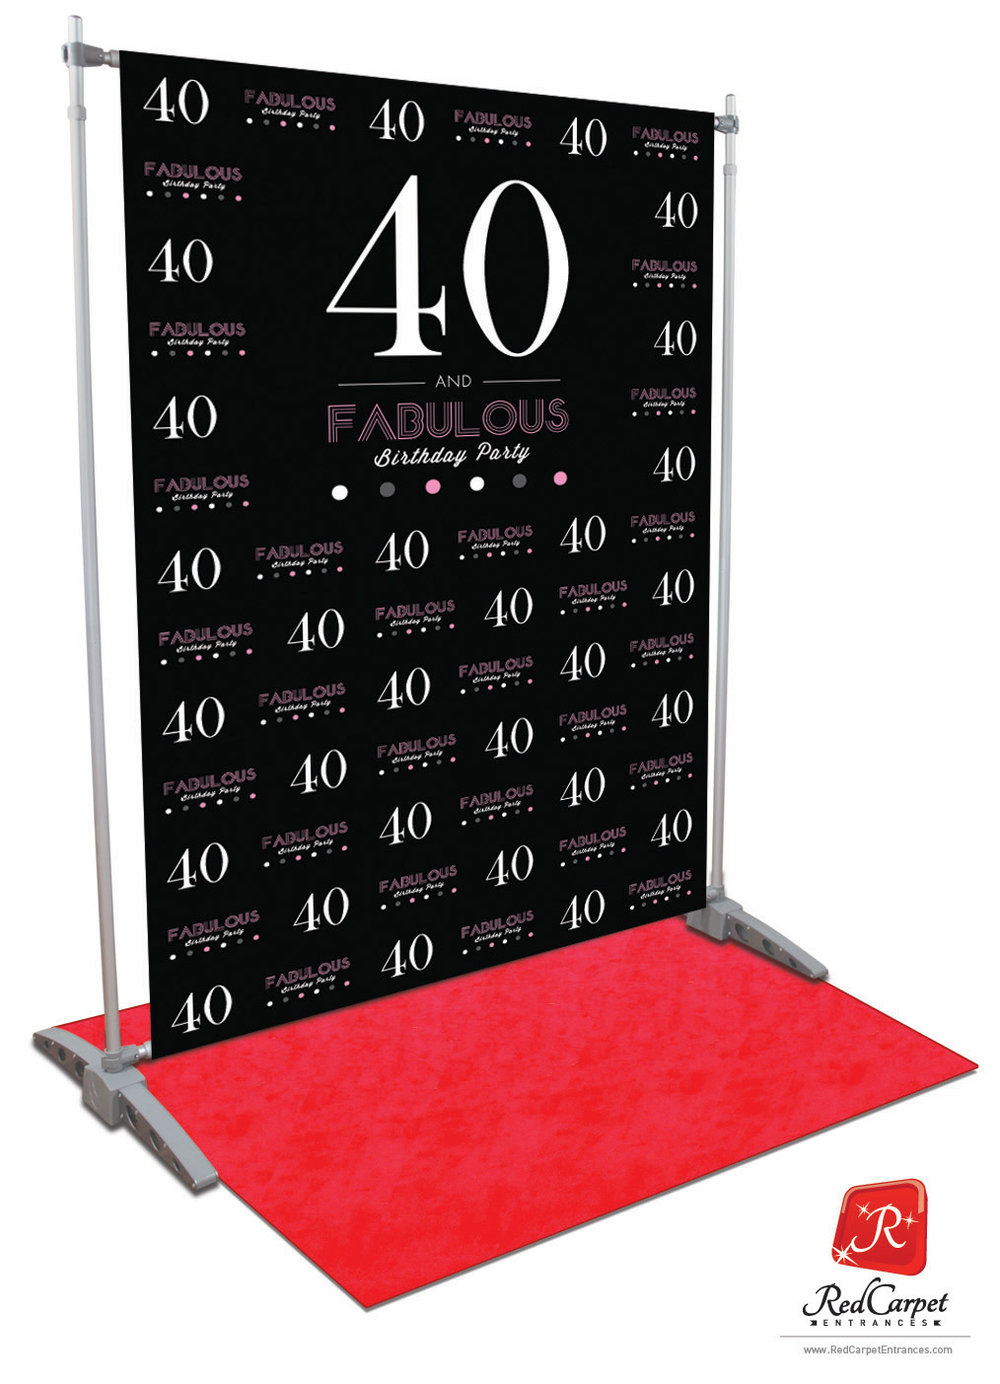 40 And Fabulous Birthday Backdrop Black 5x8 Red Carpet